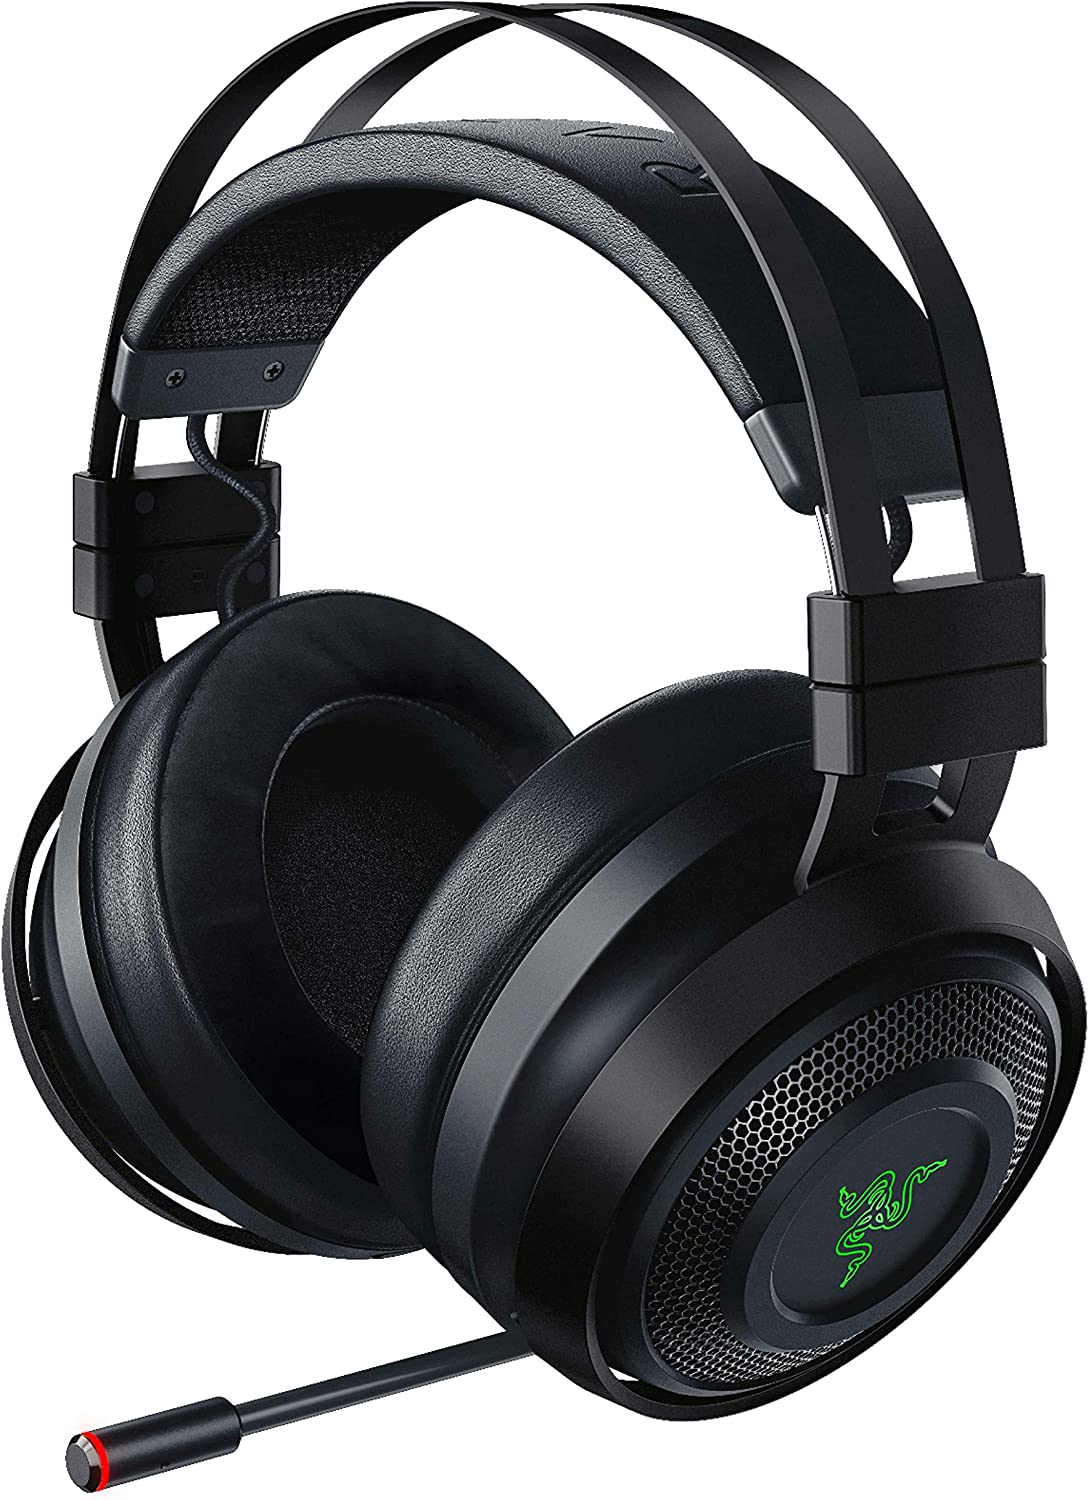 Auriculares Inalambricos Razer Nari Ultimate 7.1 Surround